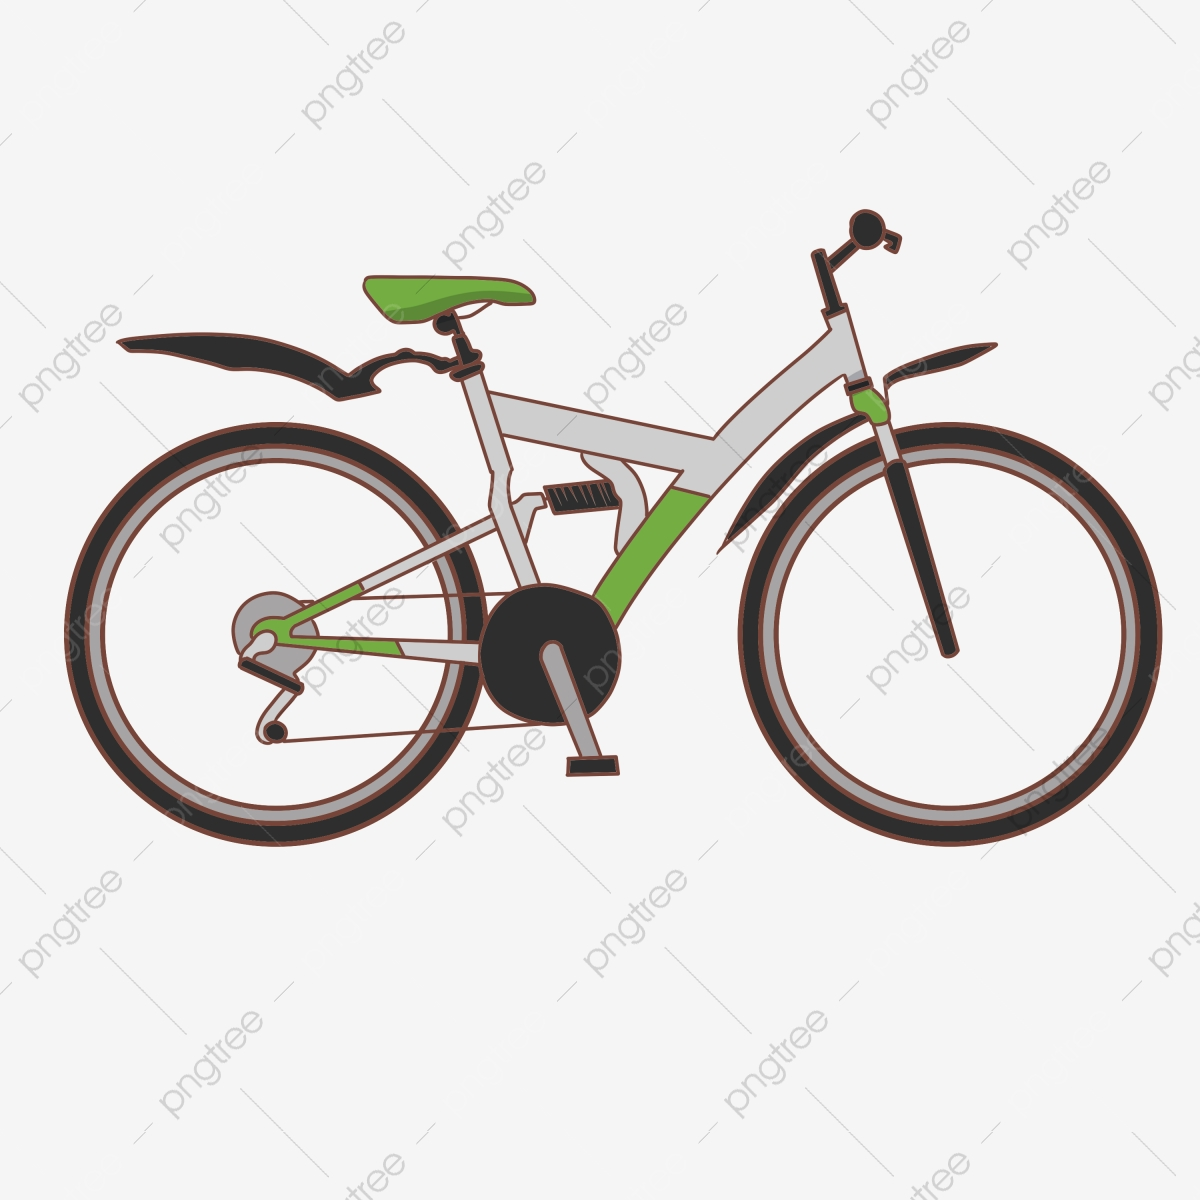 Cartoon White Bicycle Illustration Road Race Transportation Daily Necessities Png Transparent Clipart Image And Psd File For Free Download